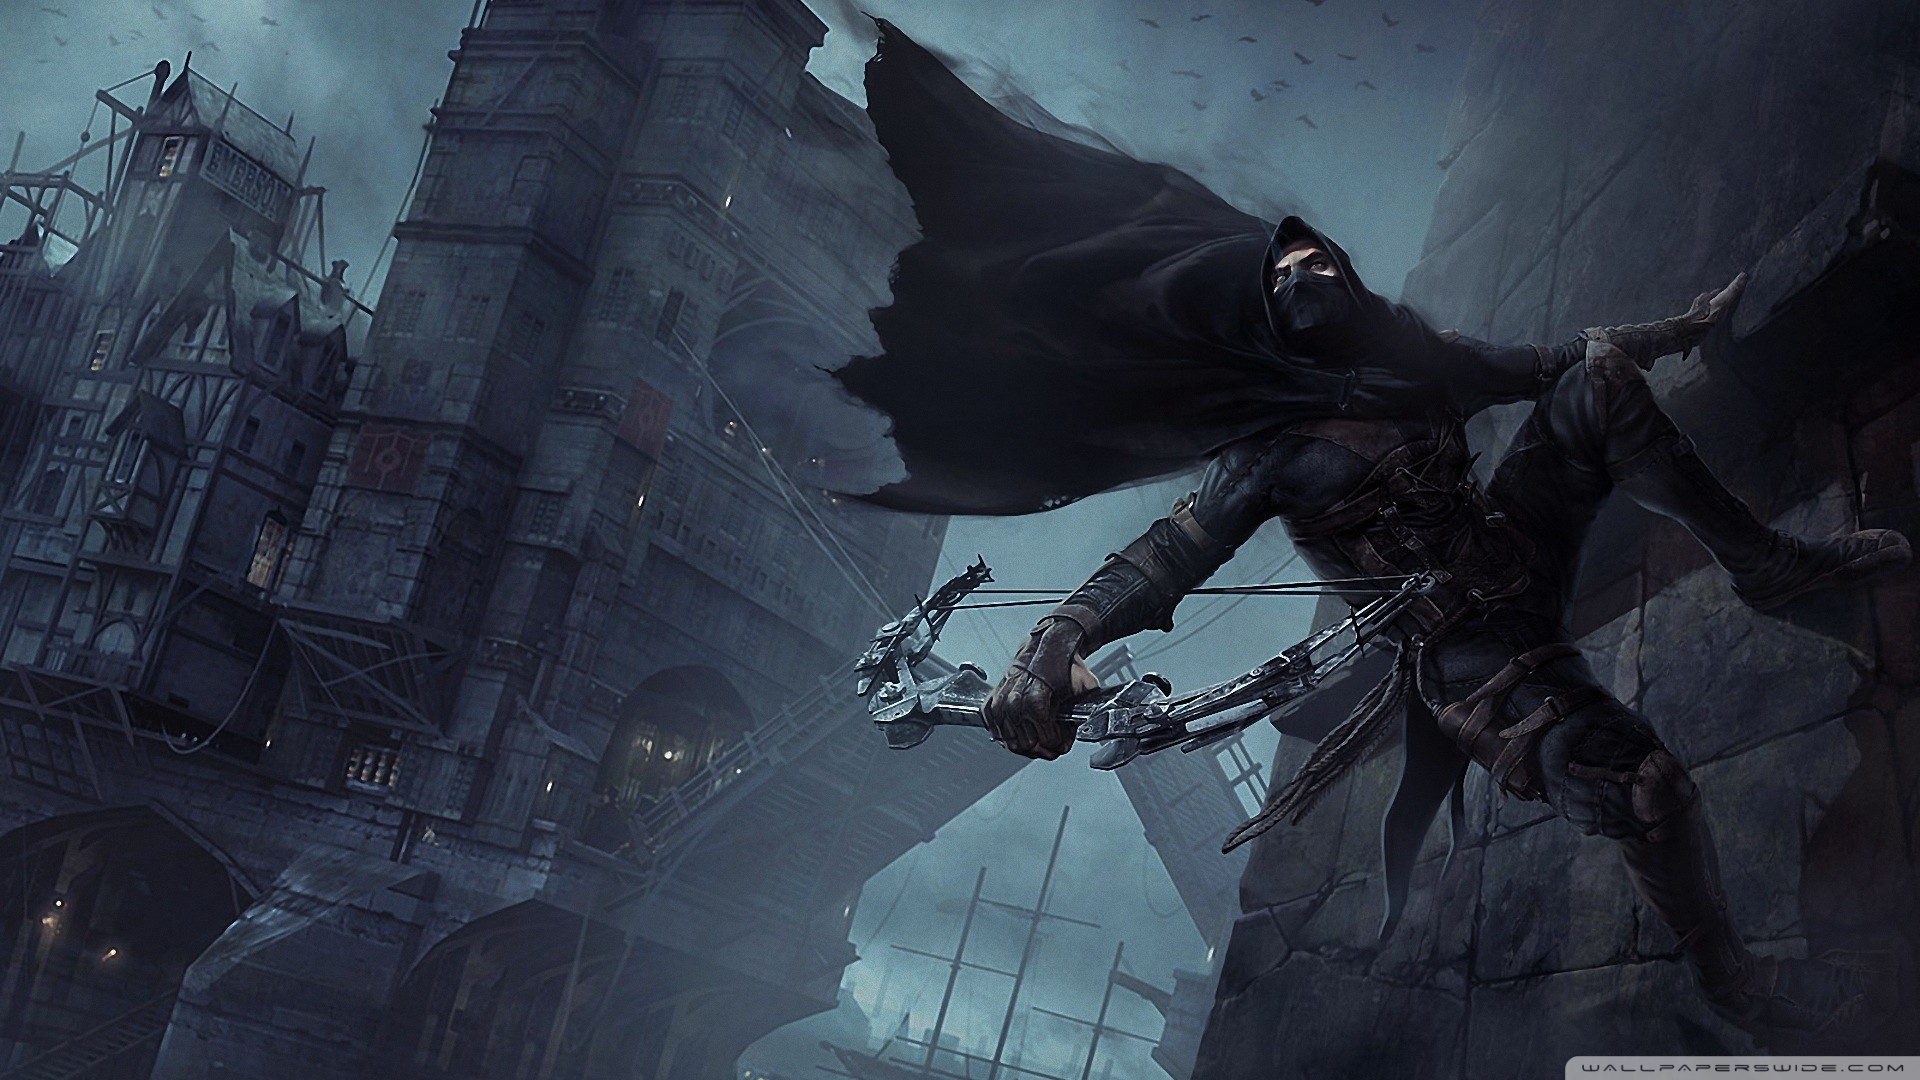 Thief Game Wallpaper HD